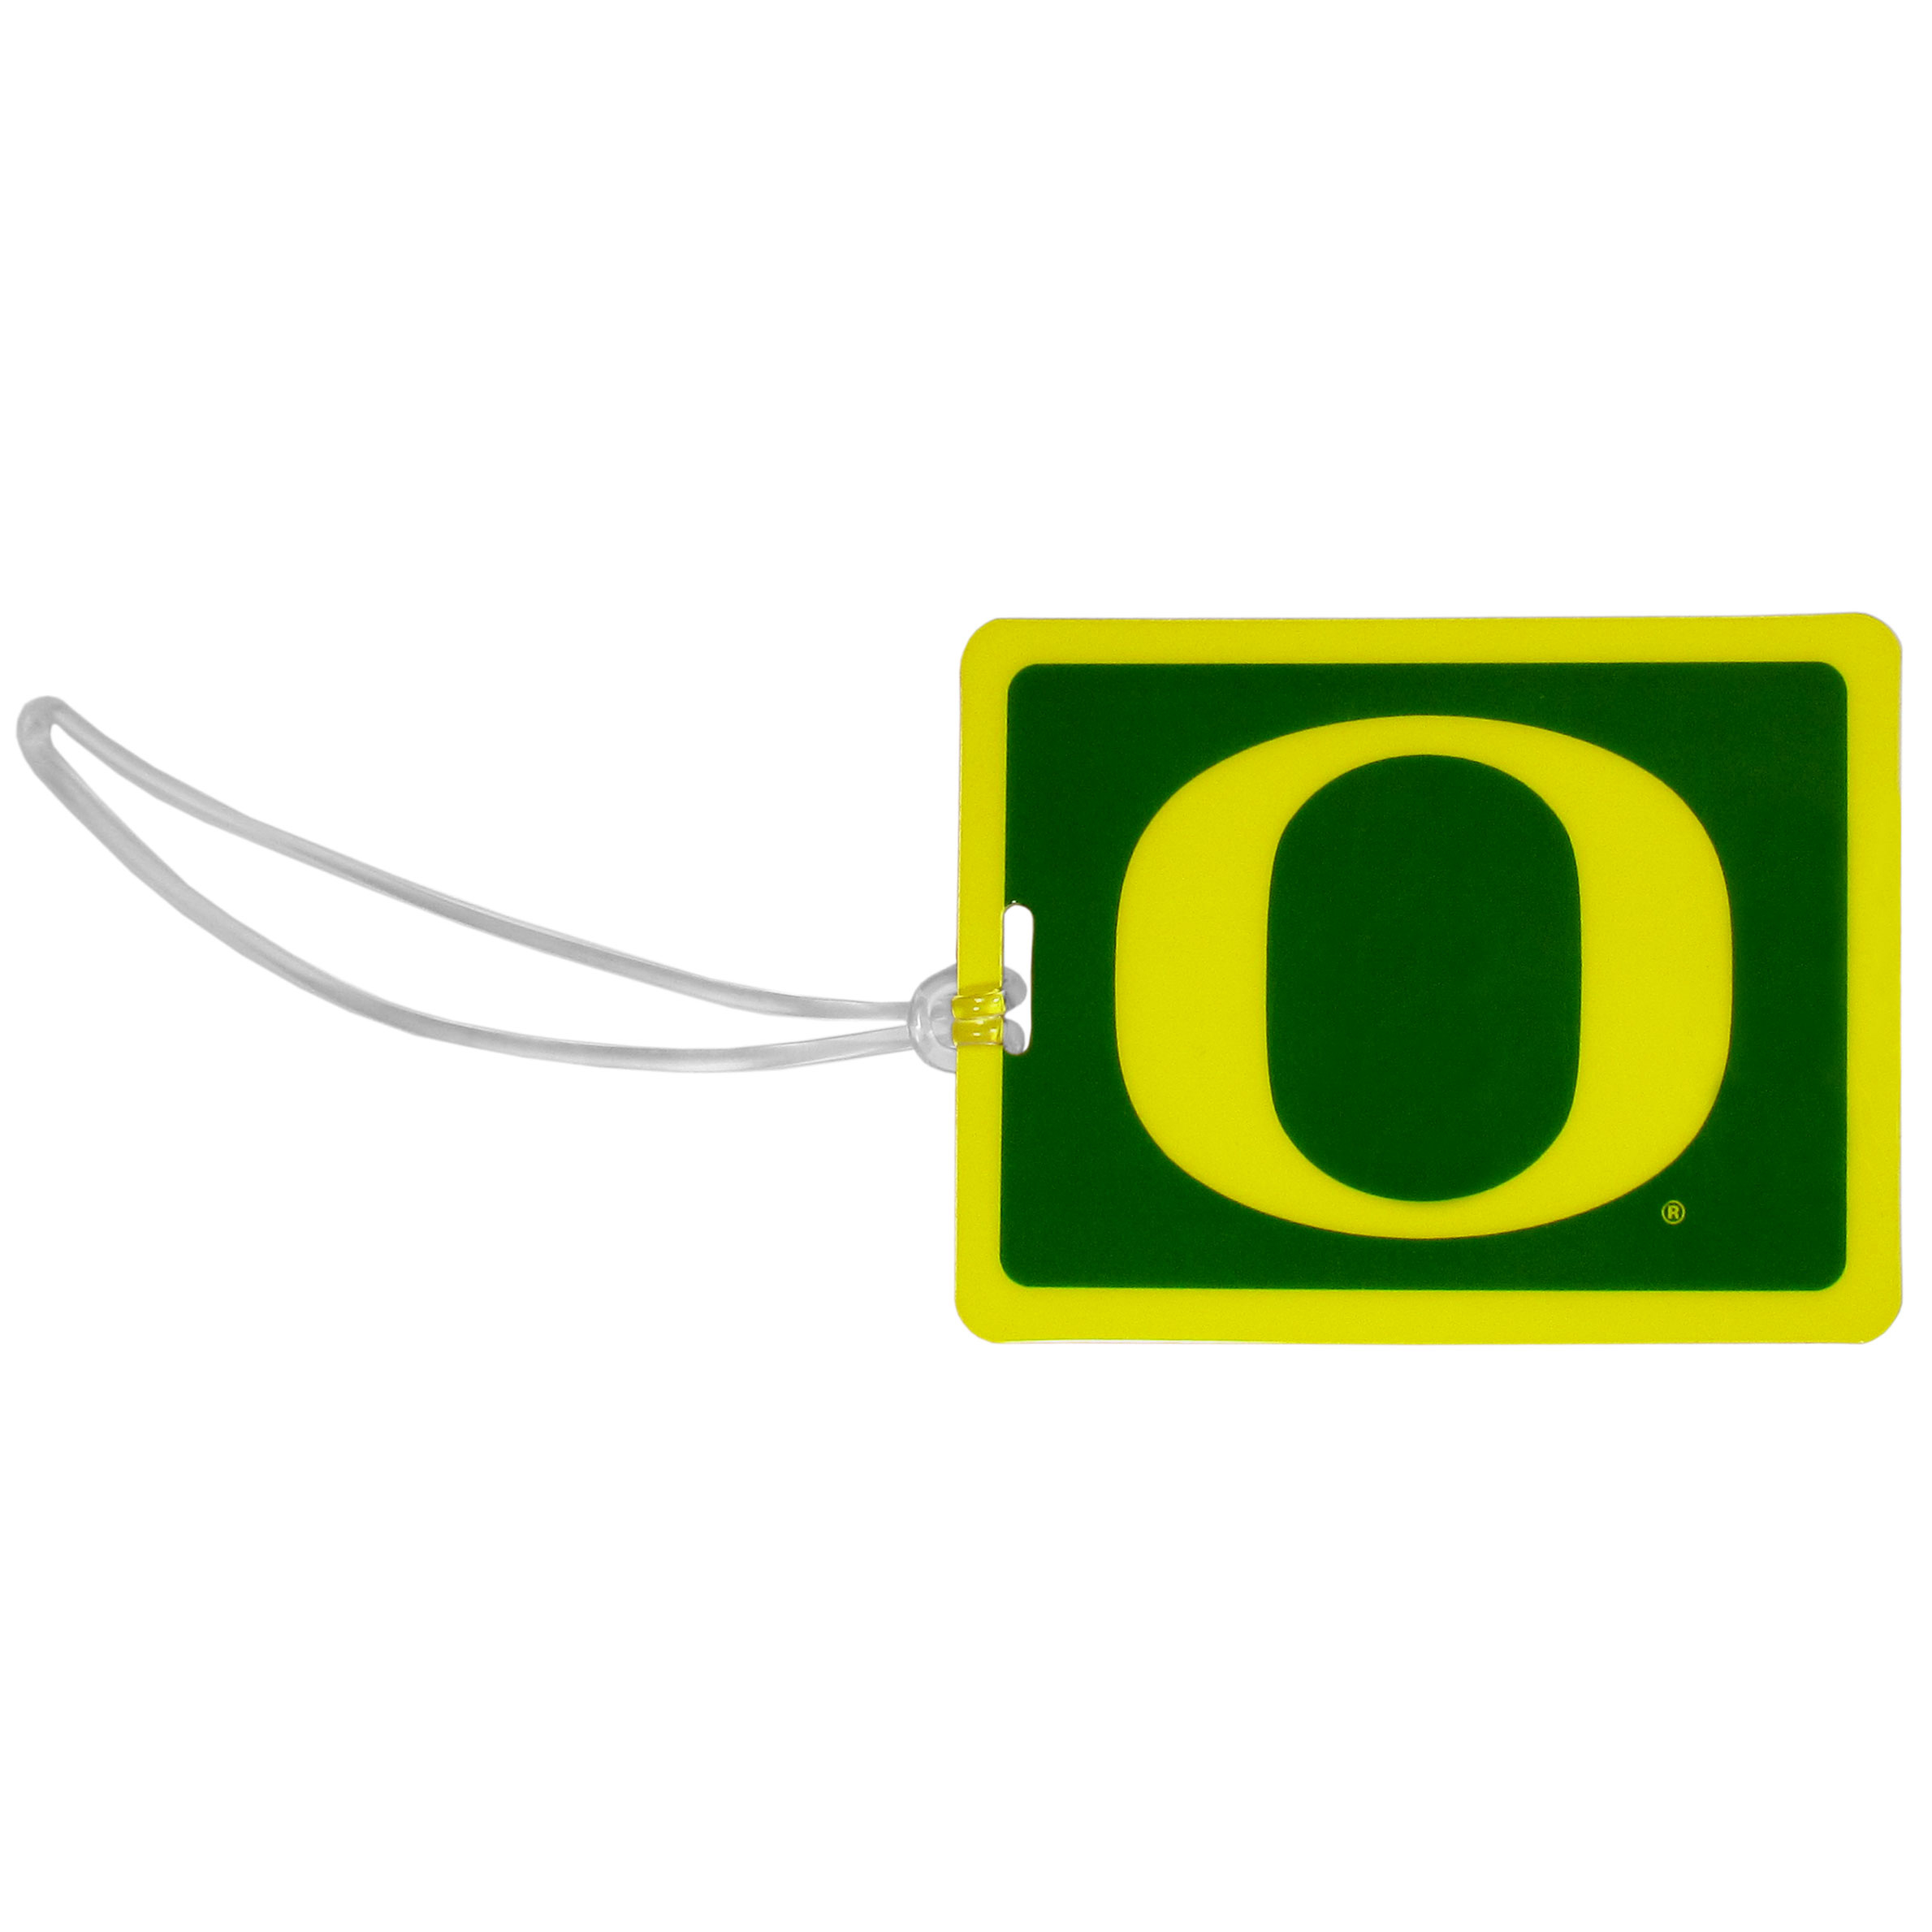 Oregon Ducks Vinyl Luggage Tag - Tired of trying to spot your suitcase or bag in a sea of luggage? Try our large and colorful Oregon Ducks luggage tag set. The tag is 4x3 inches and has a 5 inch cord to attach it easily to your bags, backpacks or luggage. The front of the tag features the team logo in a bright, team colored background and you can write you name, address and phone number on the back of the tag.